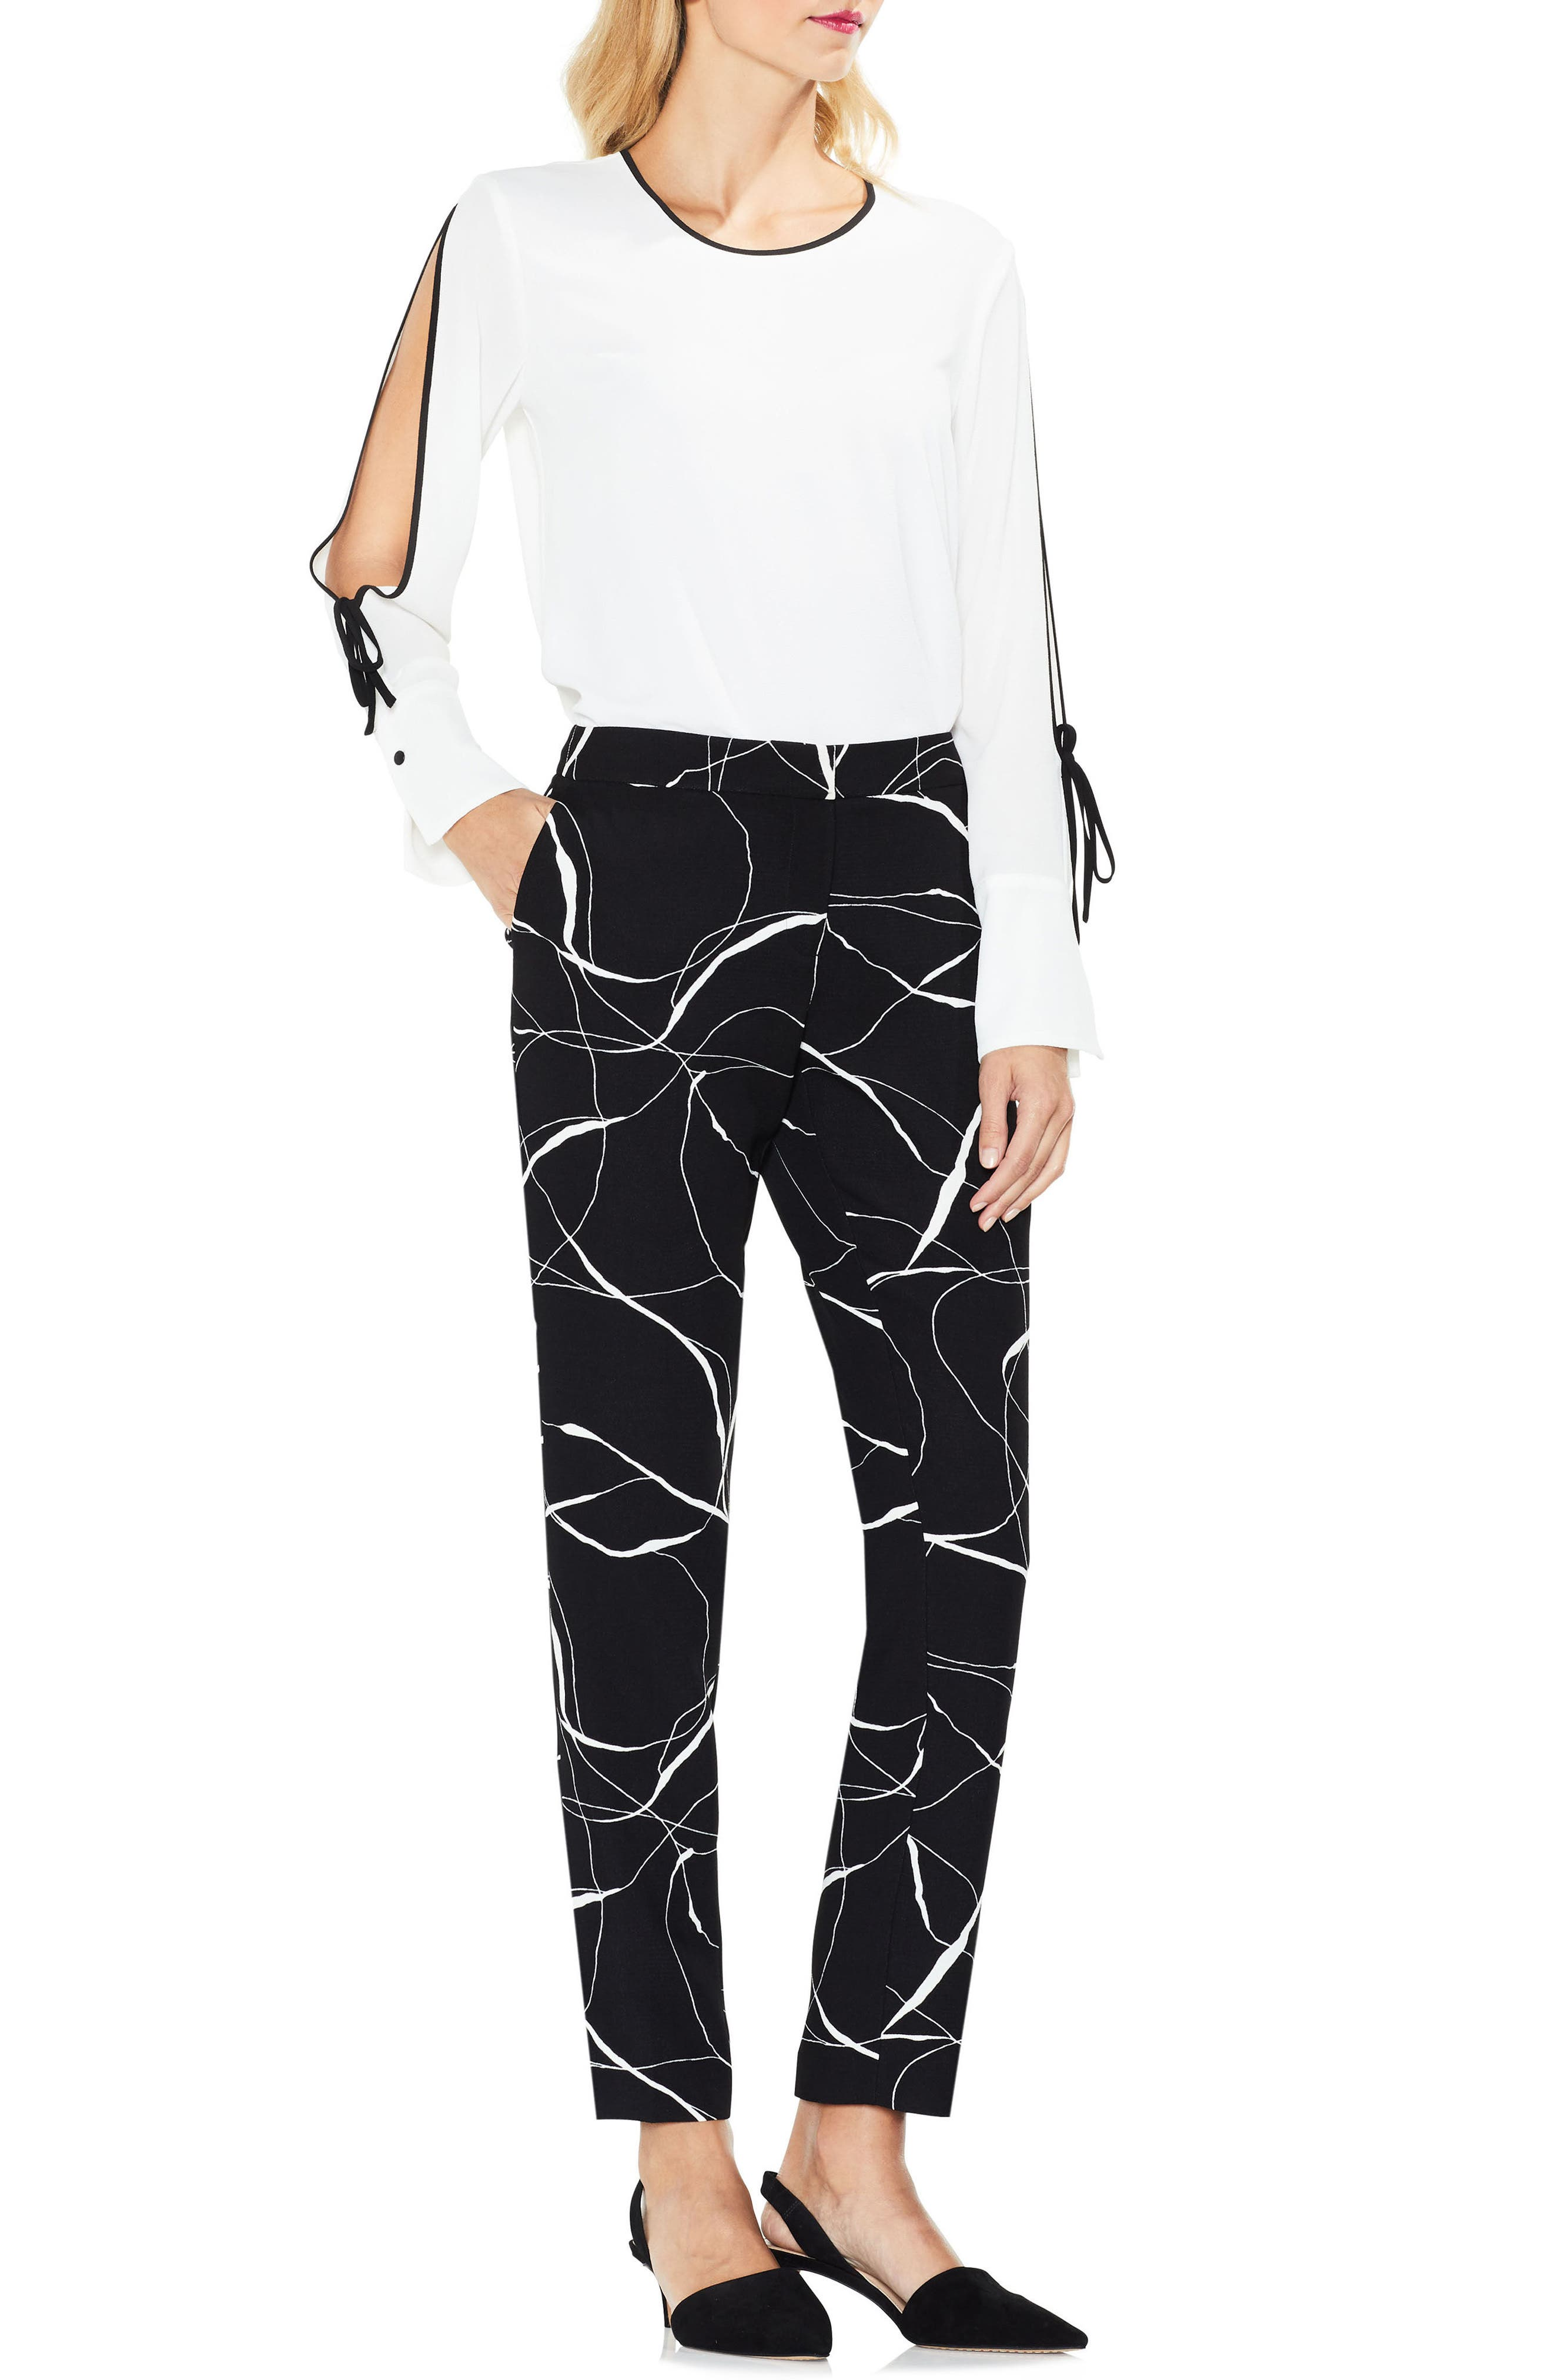 Ink Swirl Print Ankle Pants,                         Main,                         color, 010